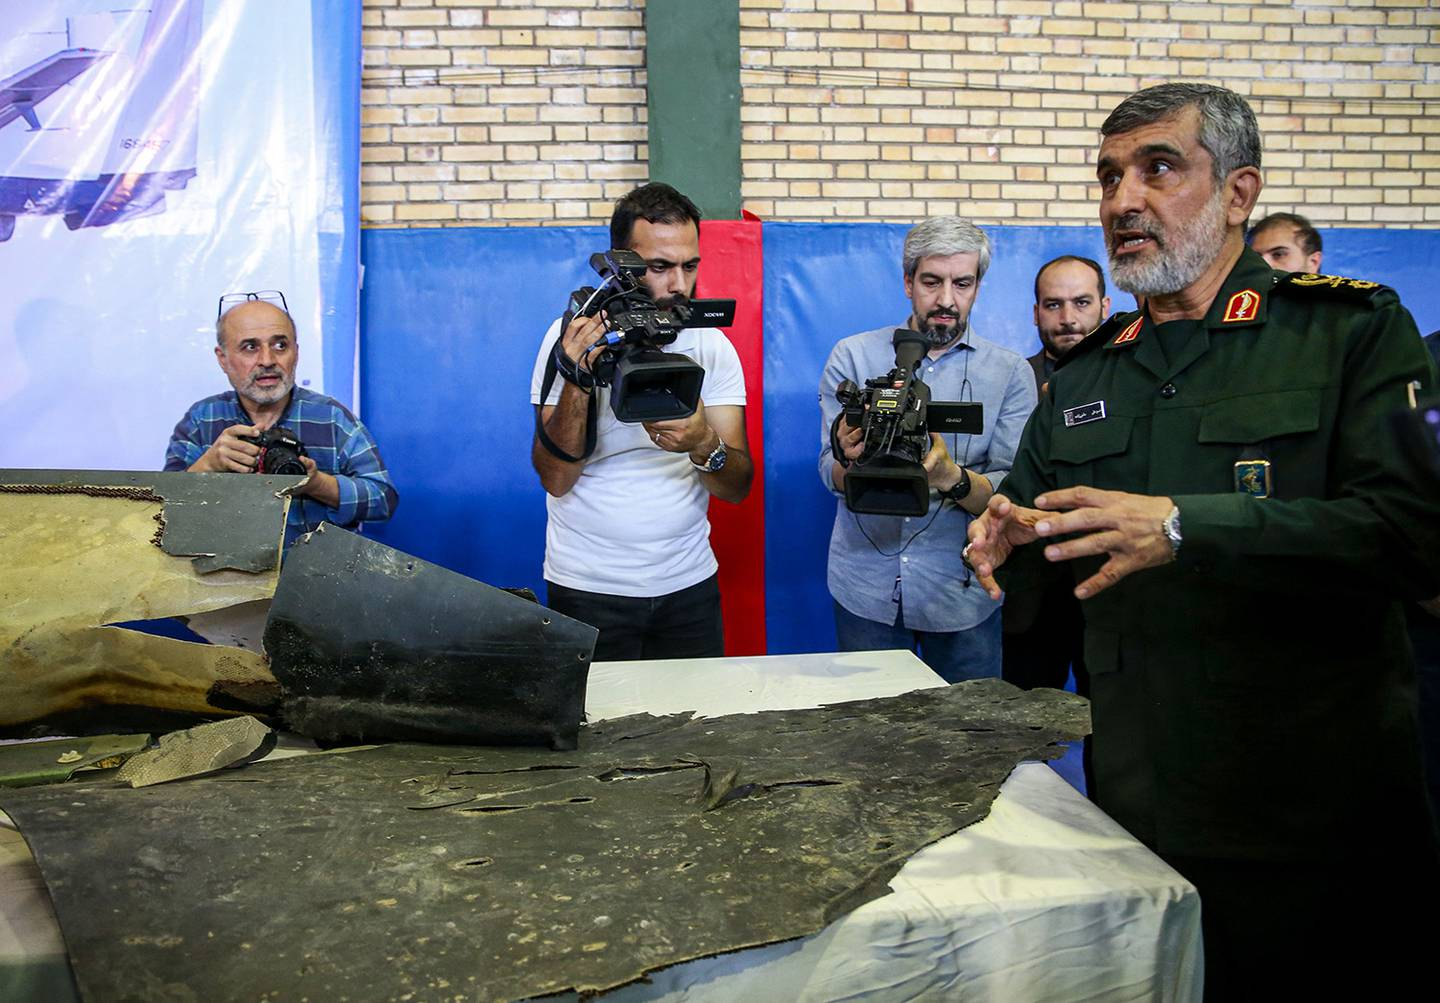 Gen. Amir Ali Hajizadeh, right, Iran's head of the Revolutionary Guard's aerospace division, speaks to media next to debris from a downed U.S. drone reportedly recovered within Iran's territorial waters and put on display by the Revolutionary Guard in the capital Tehran